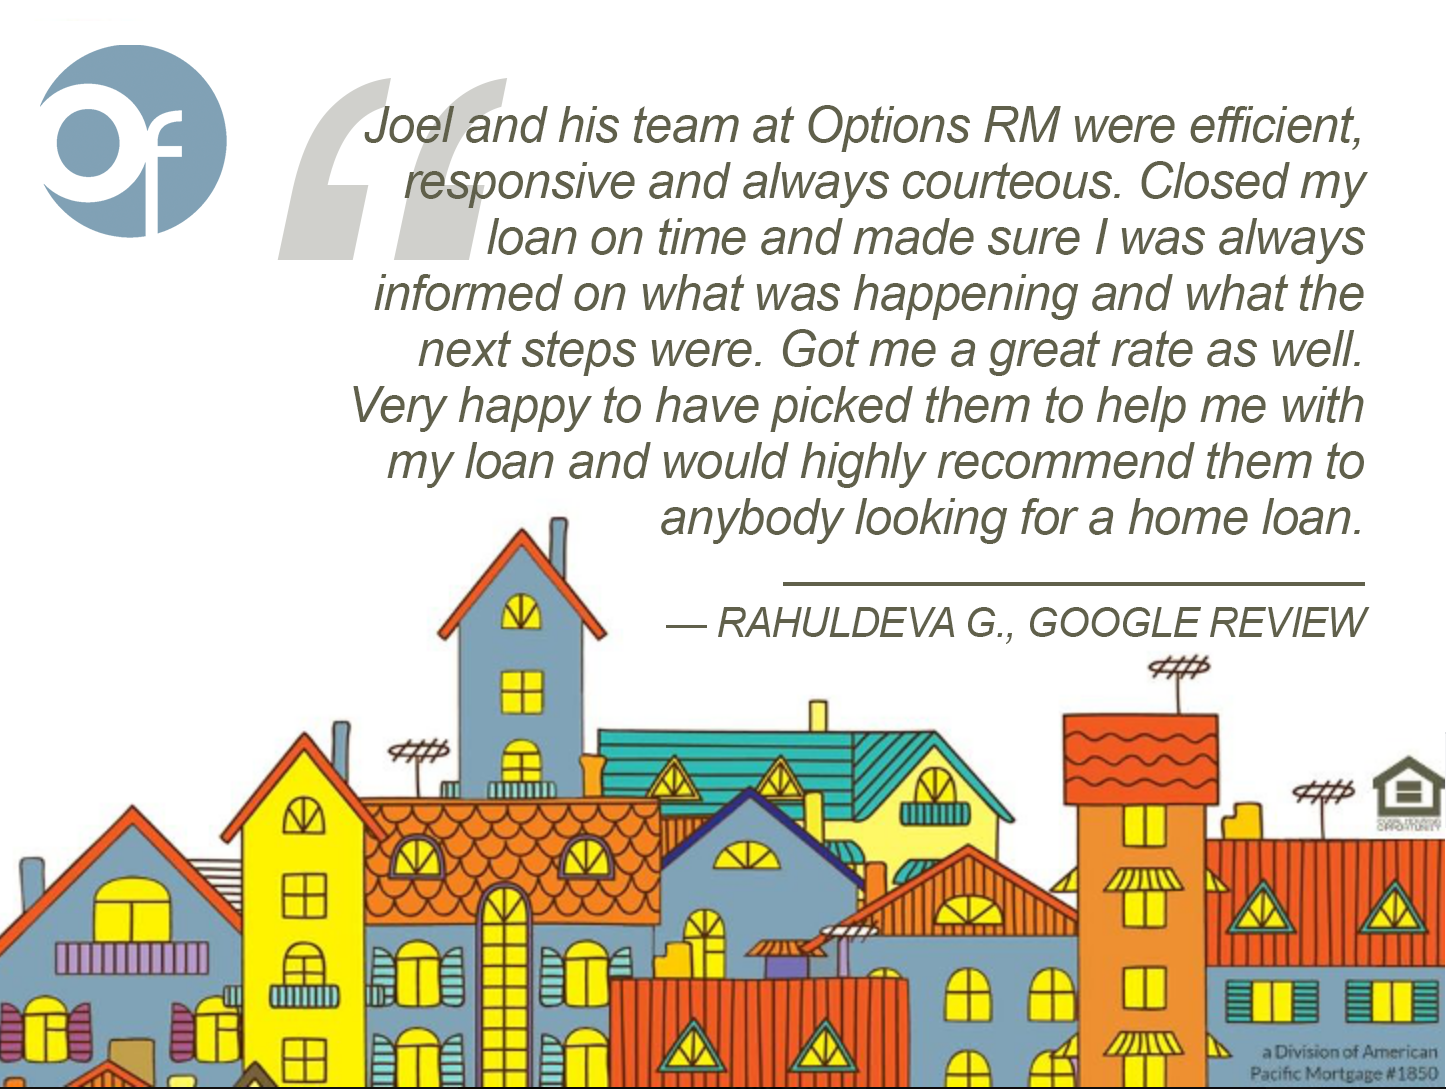 Joel and his team at Options RM were efficient, responsive and always courteous. Closed my loan on time and made sure I was always informed on what was happening and what the next steps were. Got me a great rate as well. Very happy to have picked them to help me with my loan and would highly recommend them to anybody looking for a home loan.